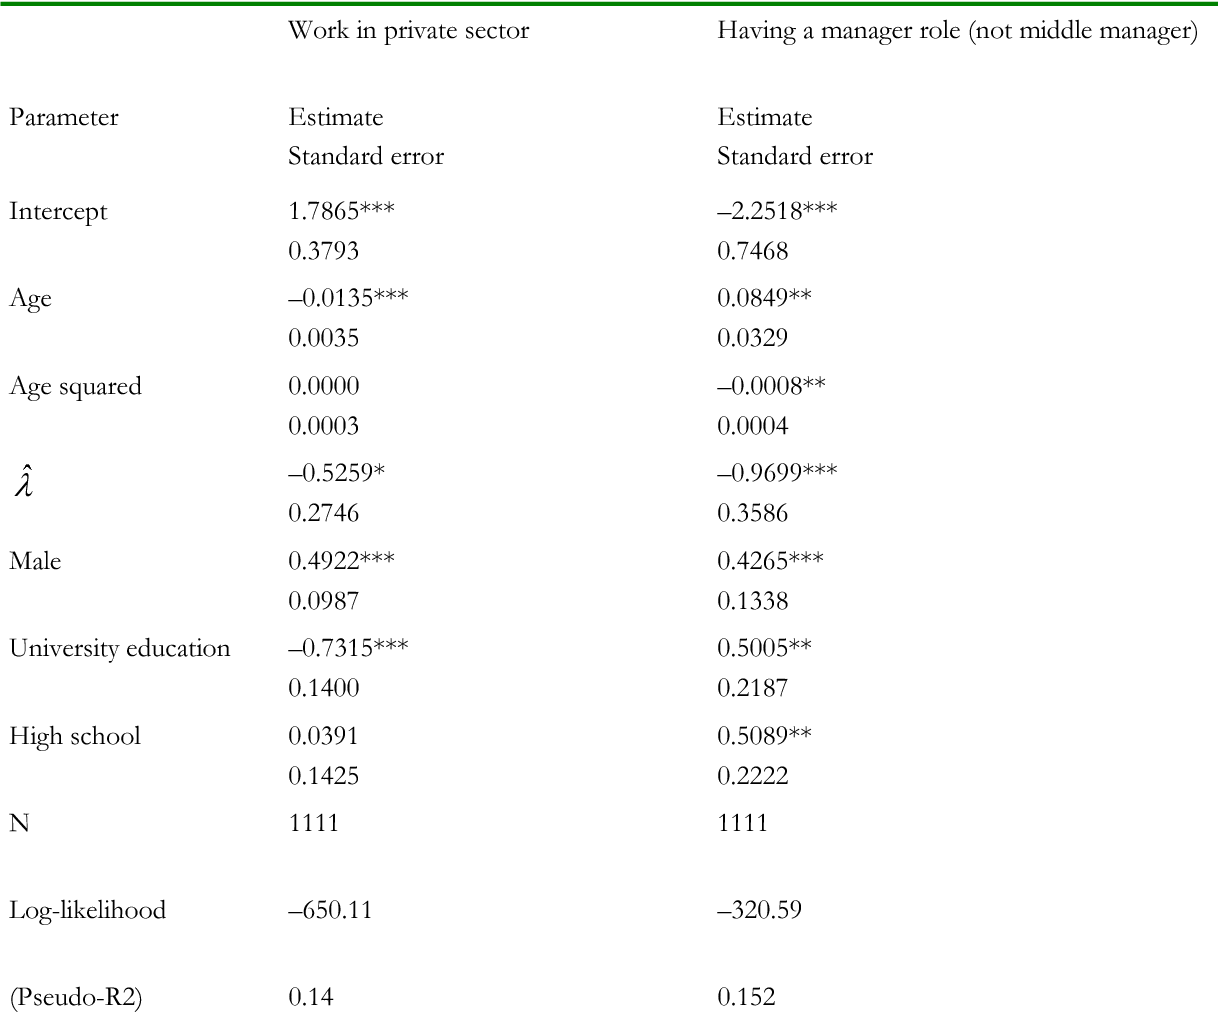 Table 8. Risk preferences and the probability of work in the private sector or having a management role